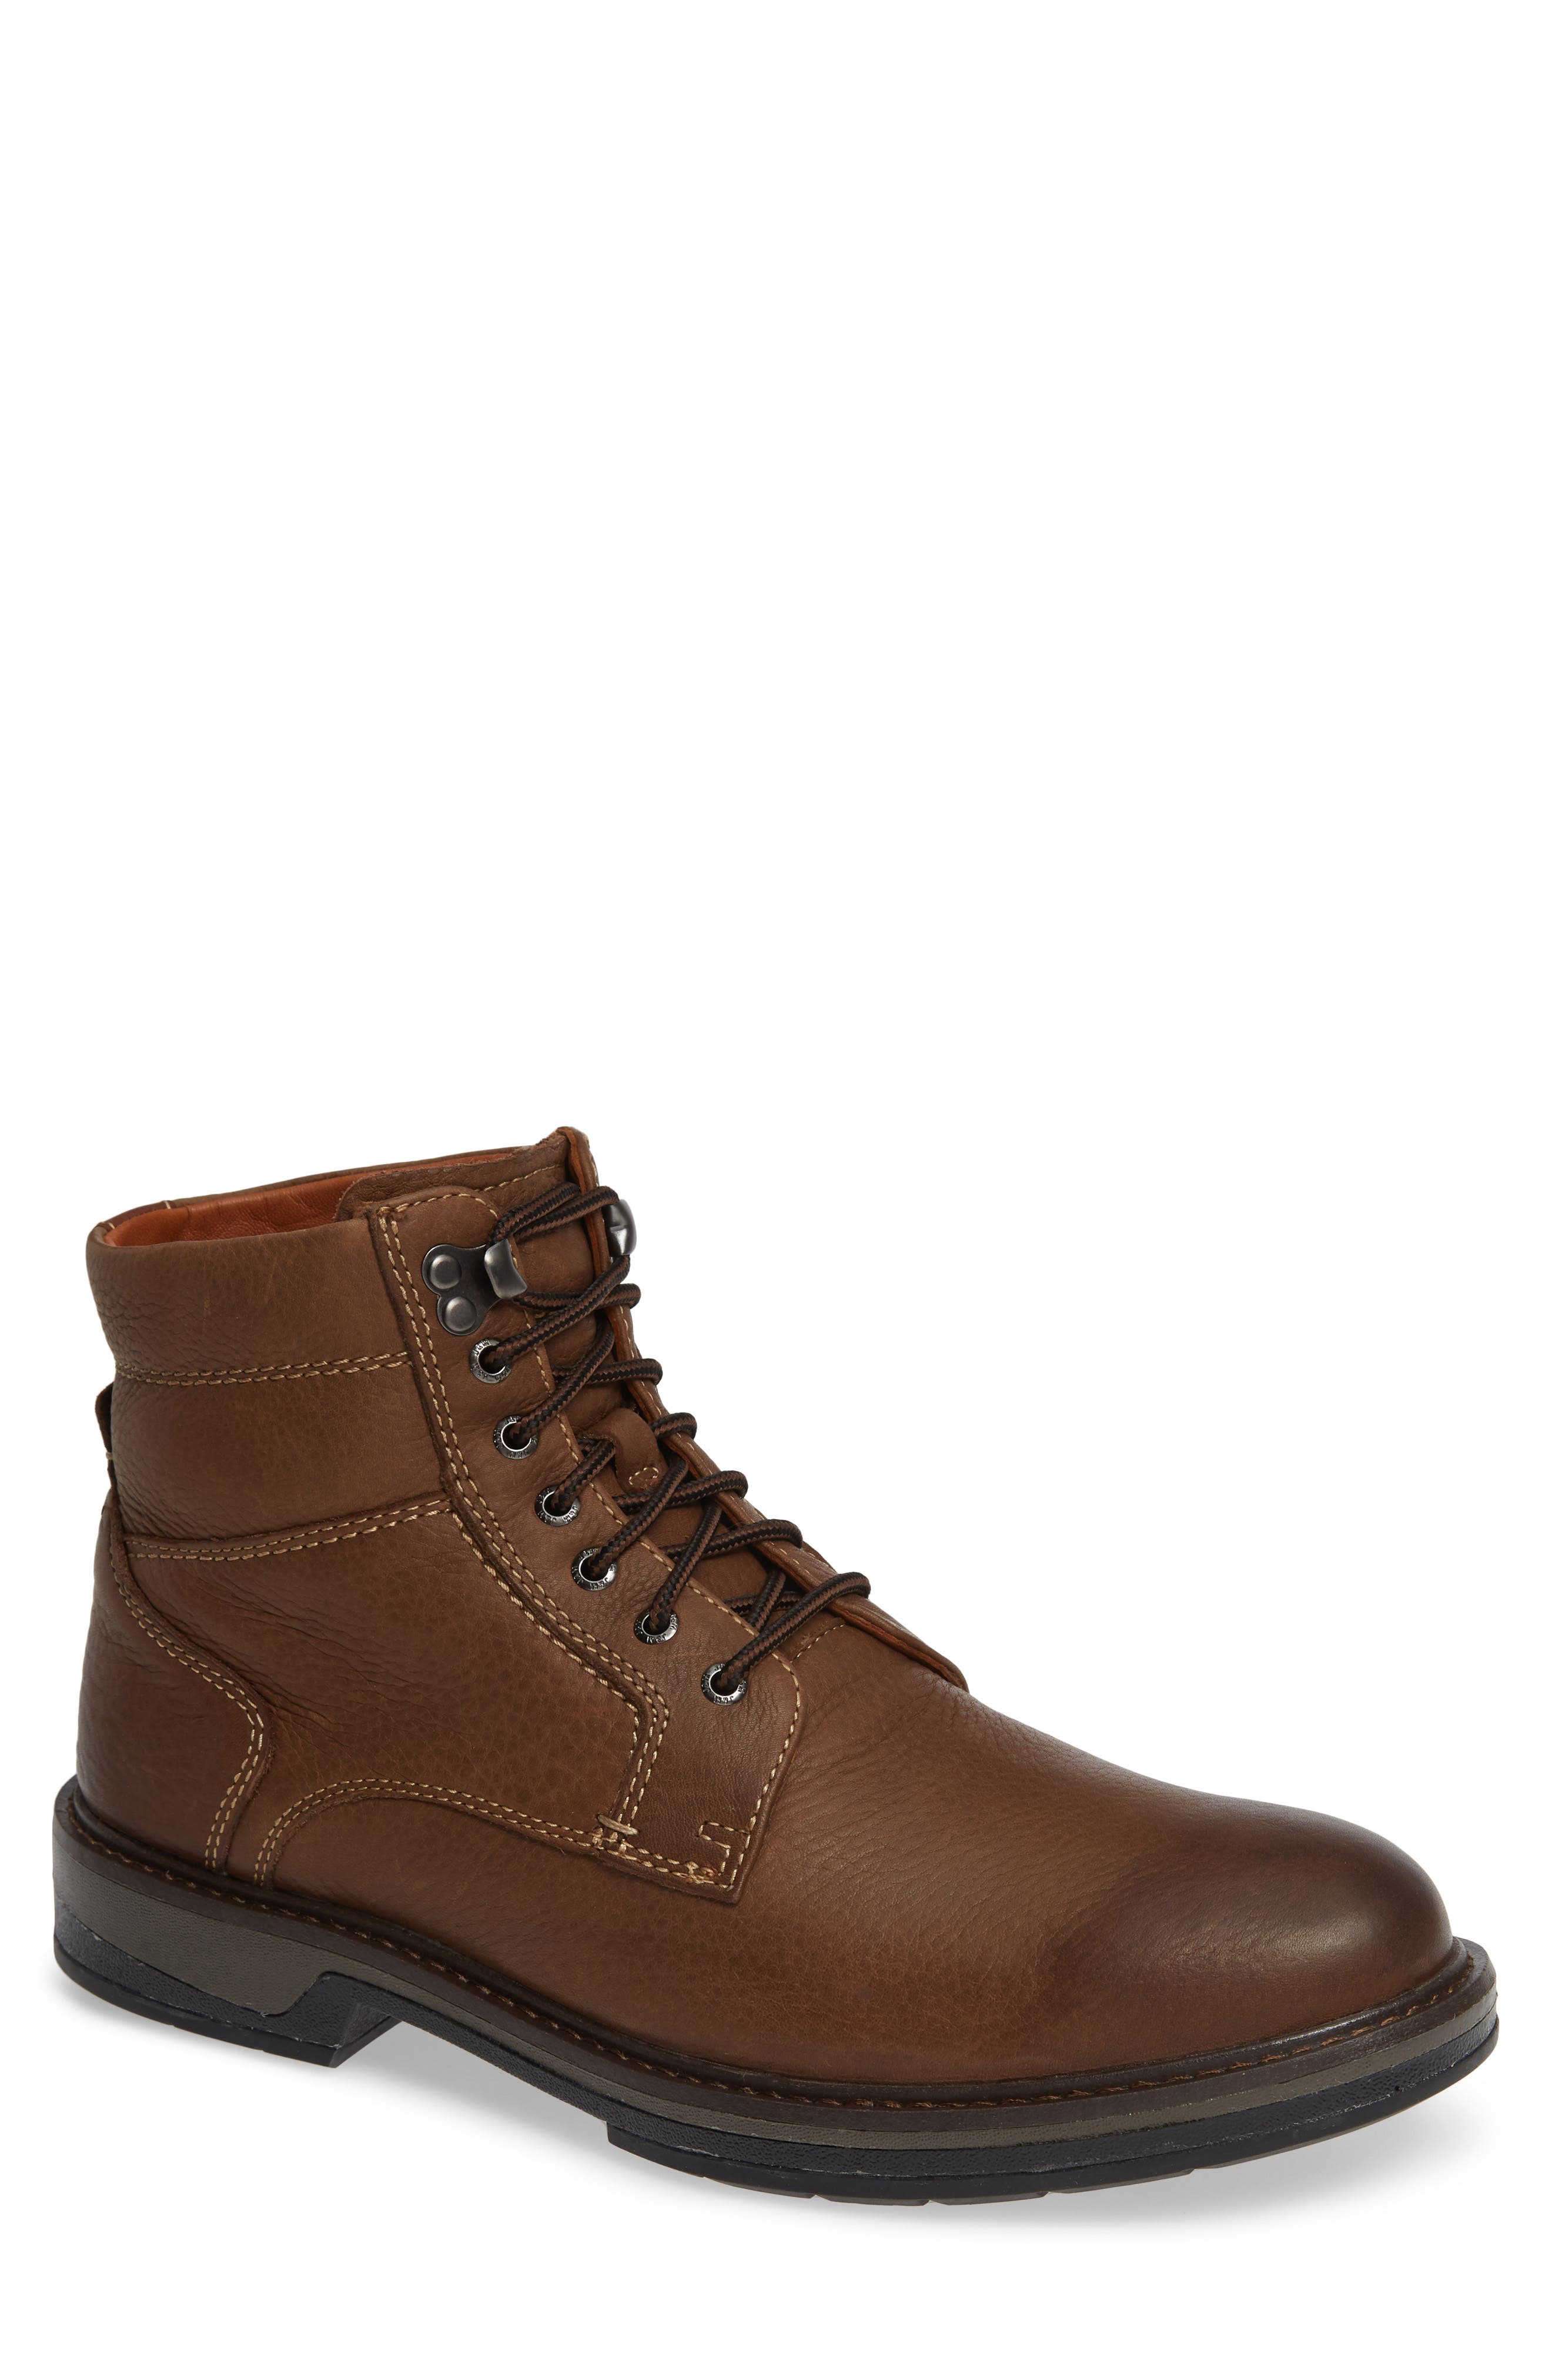 Rutledge Genuine Shearling Lined Waterproof Boot,                         Main,                         color, BROWN OILED LEATHER